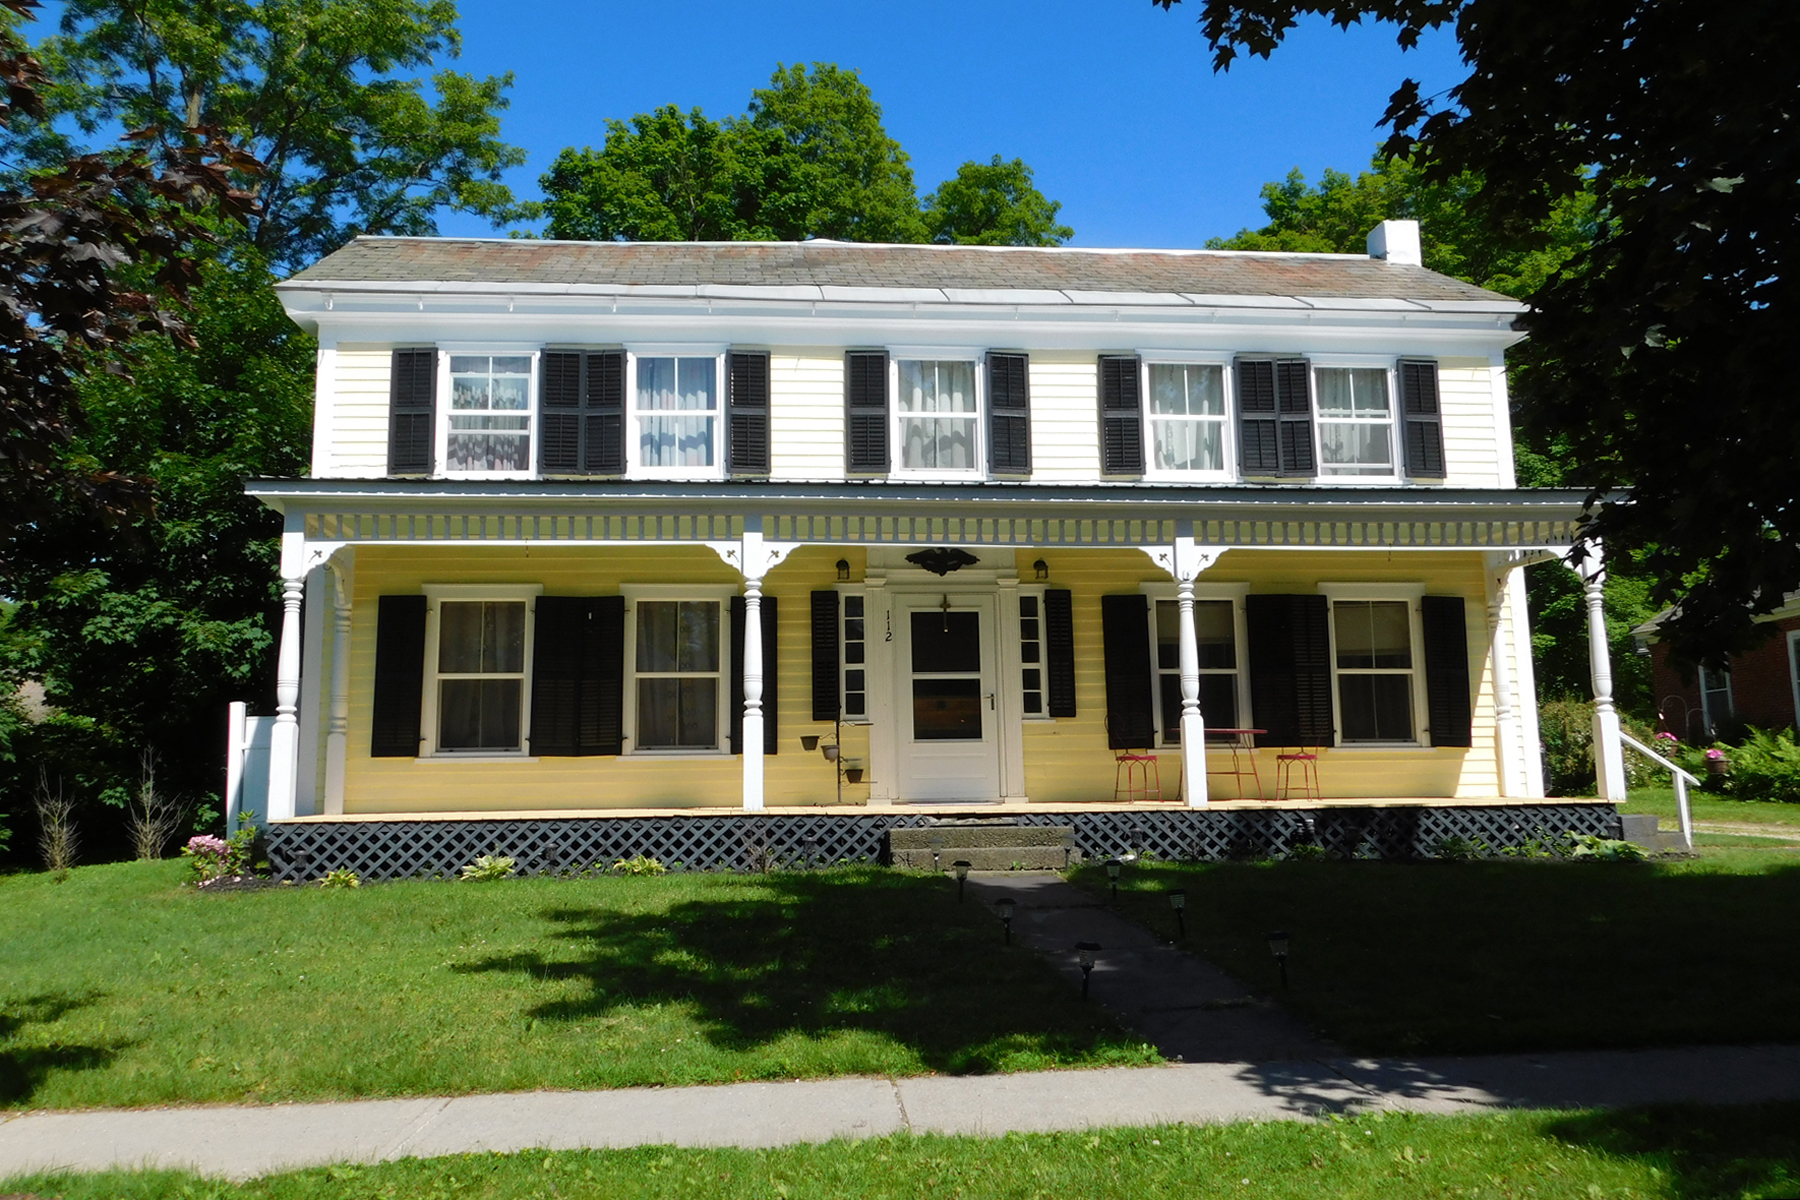 Single Family Homes for Sale at 112 North Main Street, Wallingford 112 North Main St Wallingford, Vermont 05773 United States